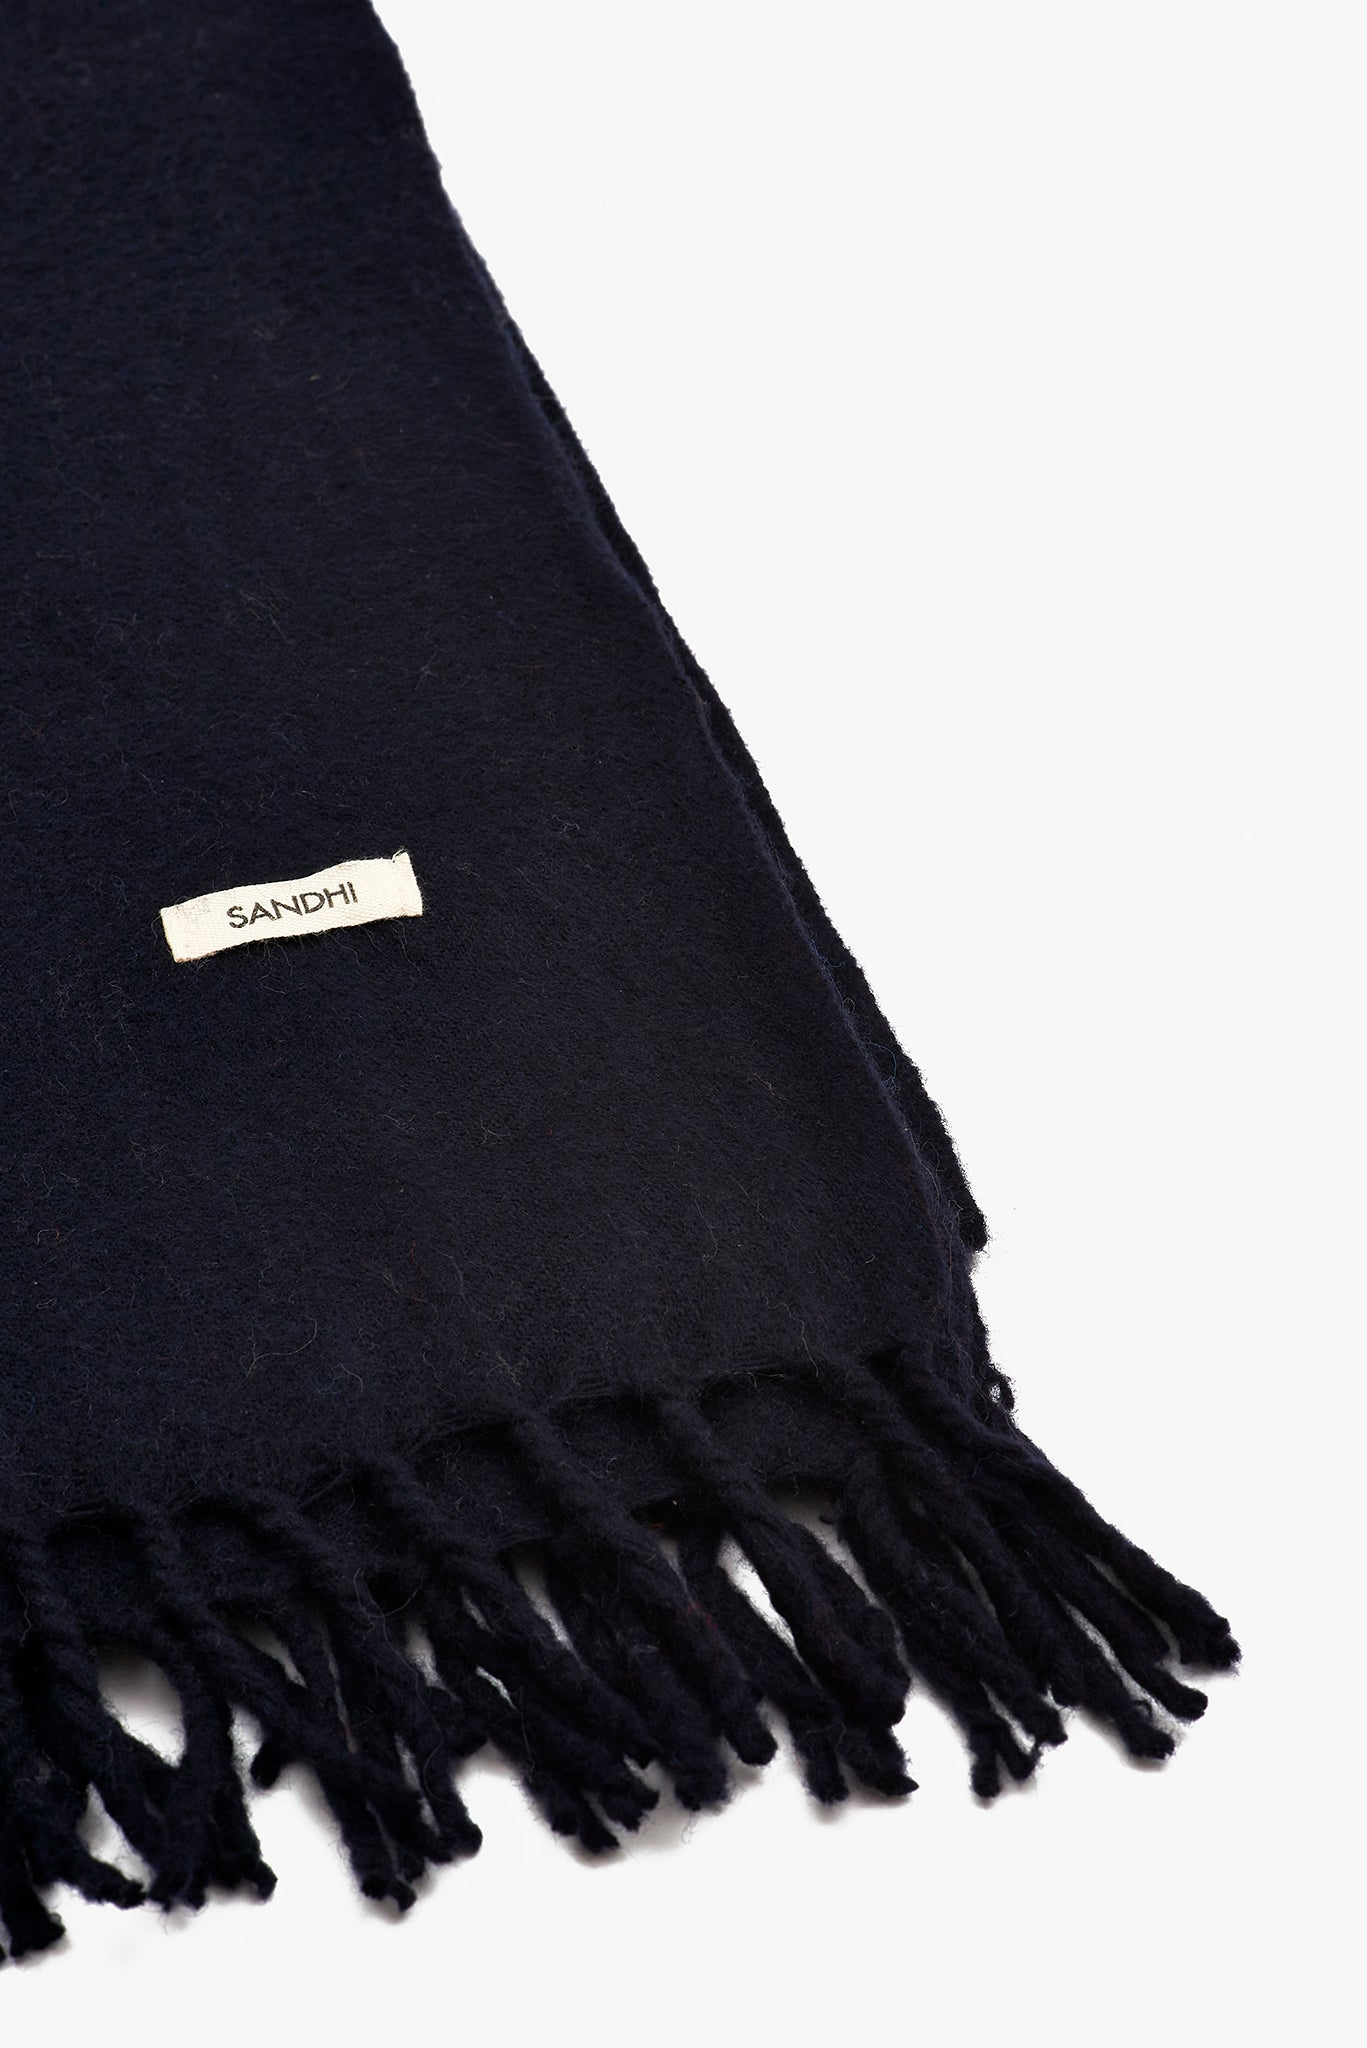 Beautiful Black Scarves for Women & Men | Sandhi